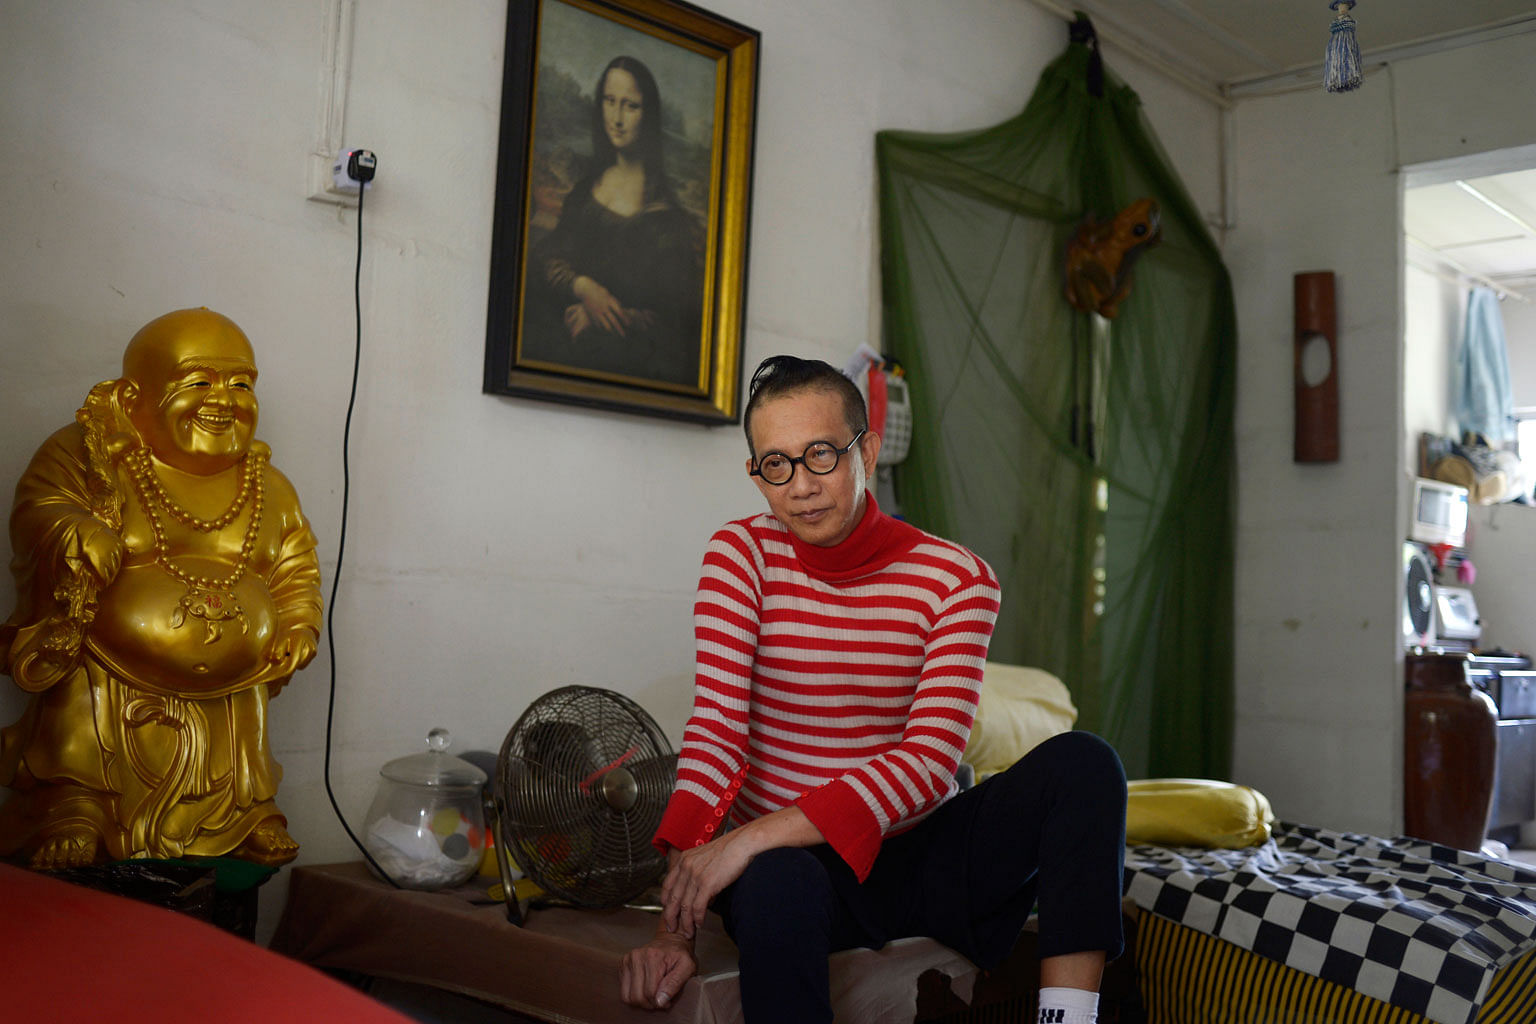 Mr Bilyy Koh, 61, in his living room. The decorations were inspired by his travels and work as a hairstylist in Europe and the Middle East. He has lived in the estate for more than 50 years and laments how the country is changing so quickly.